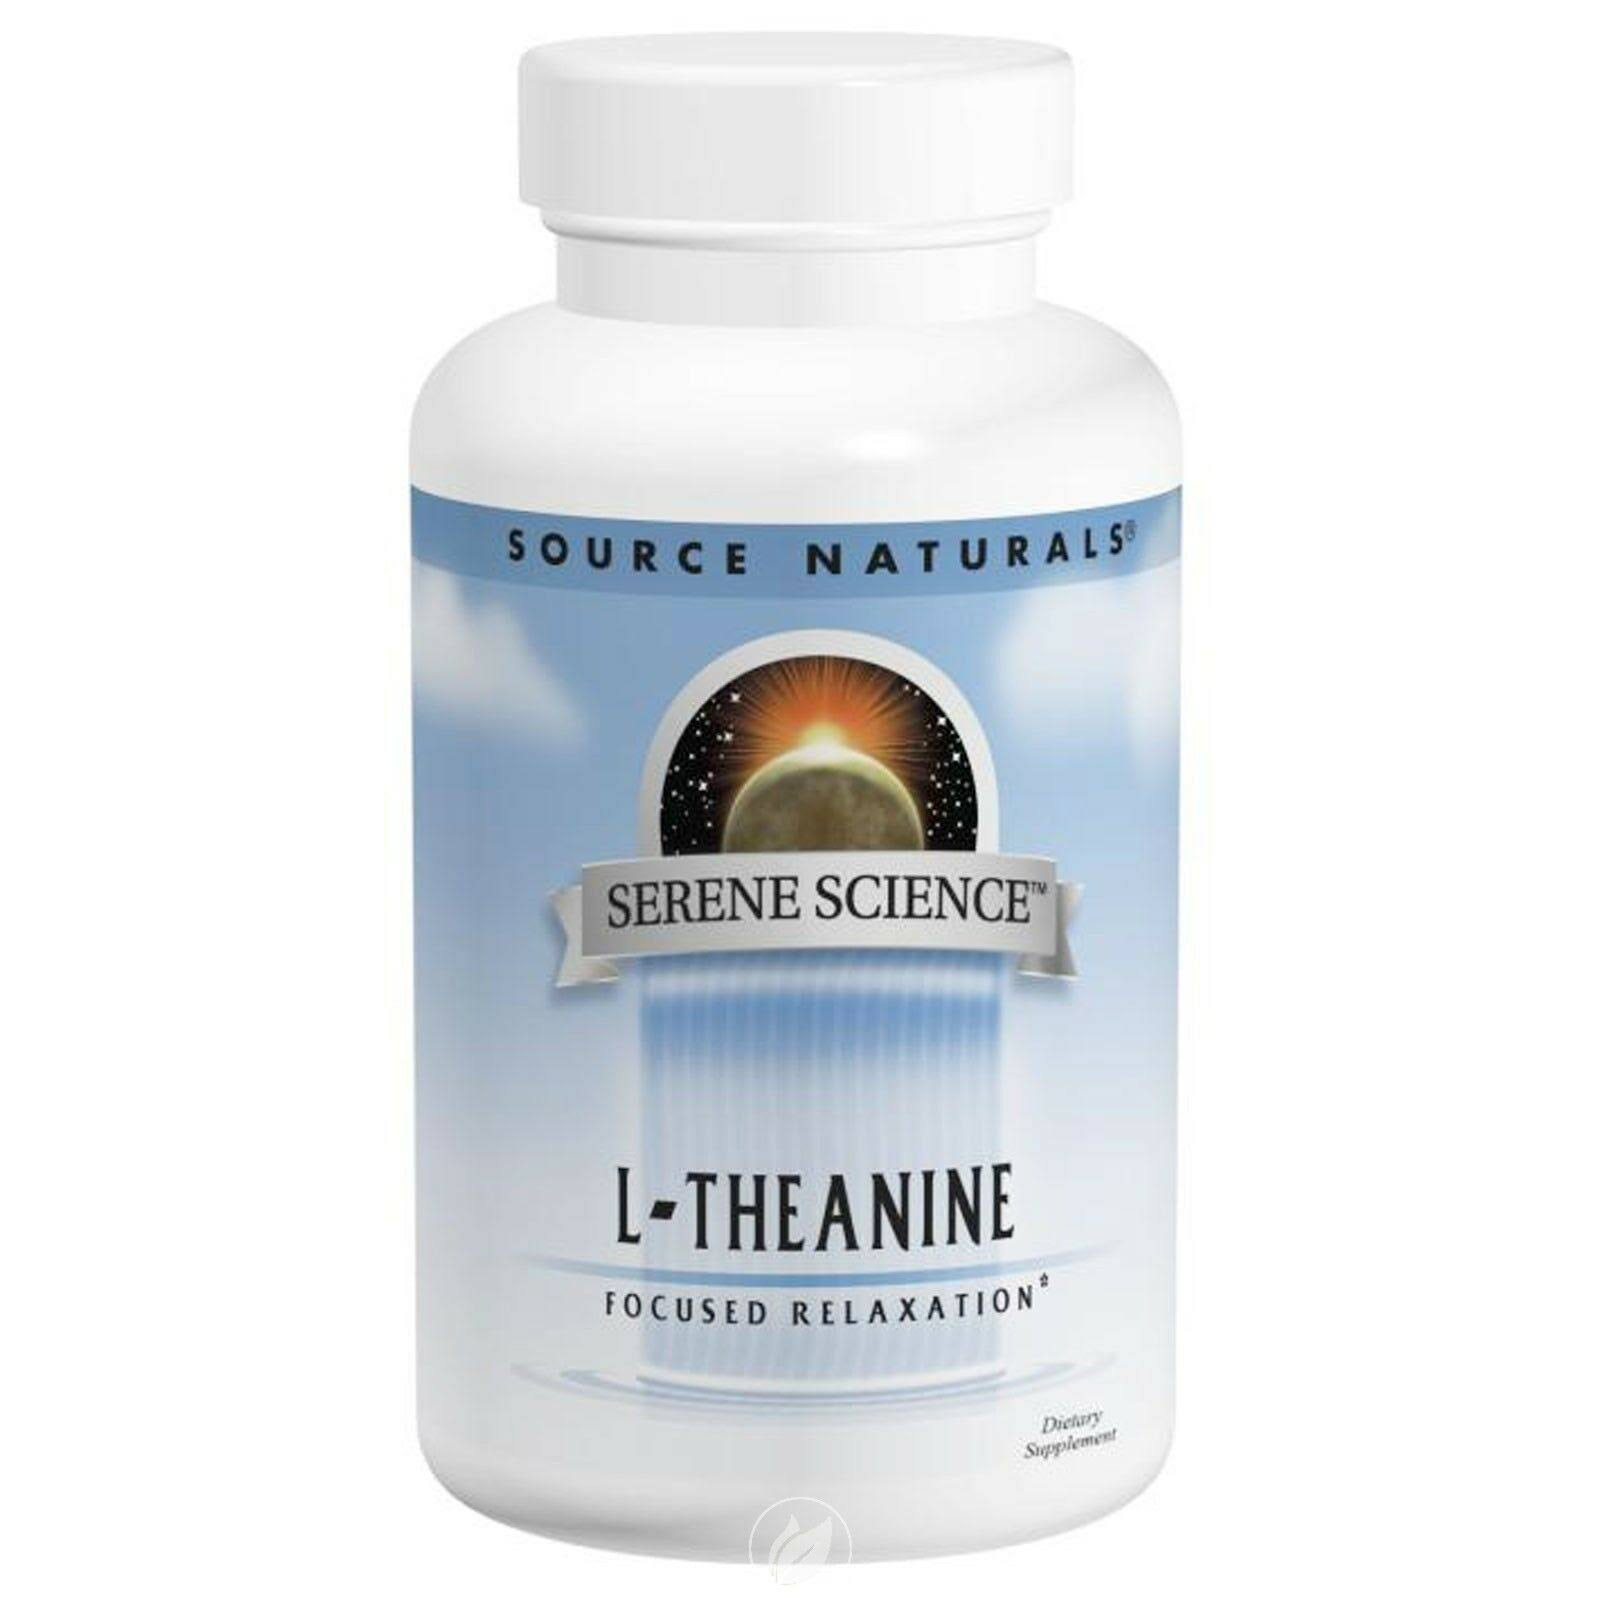 Source Naturals L-Theanine Supplement - 200mg, 60ct